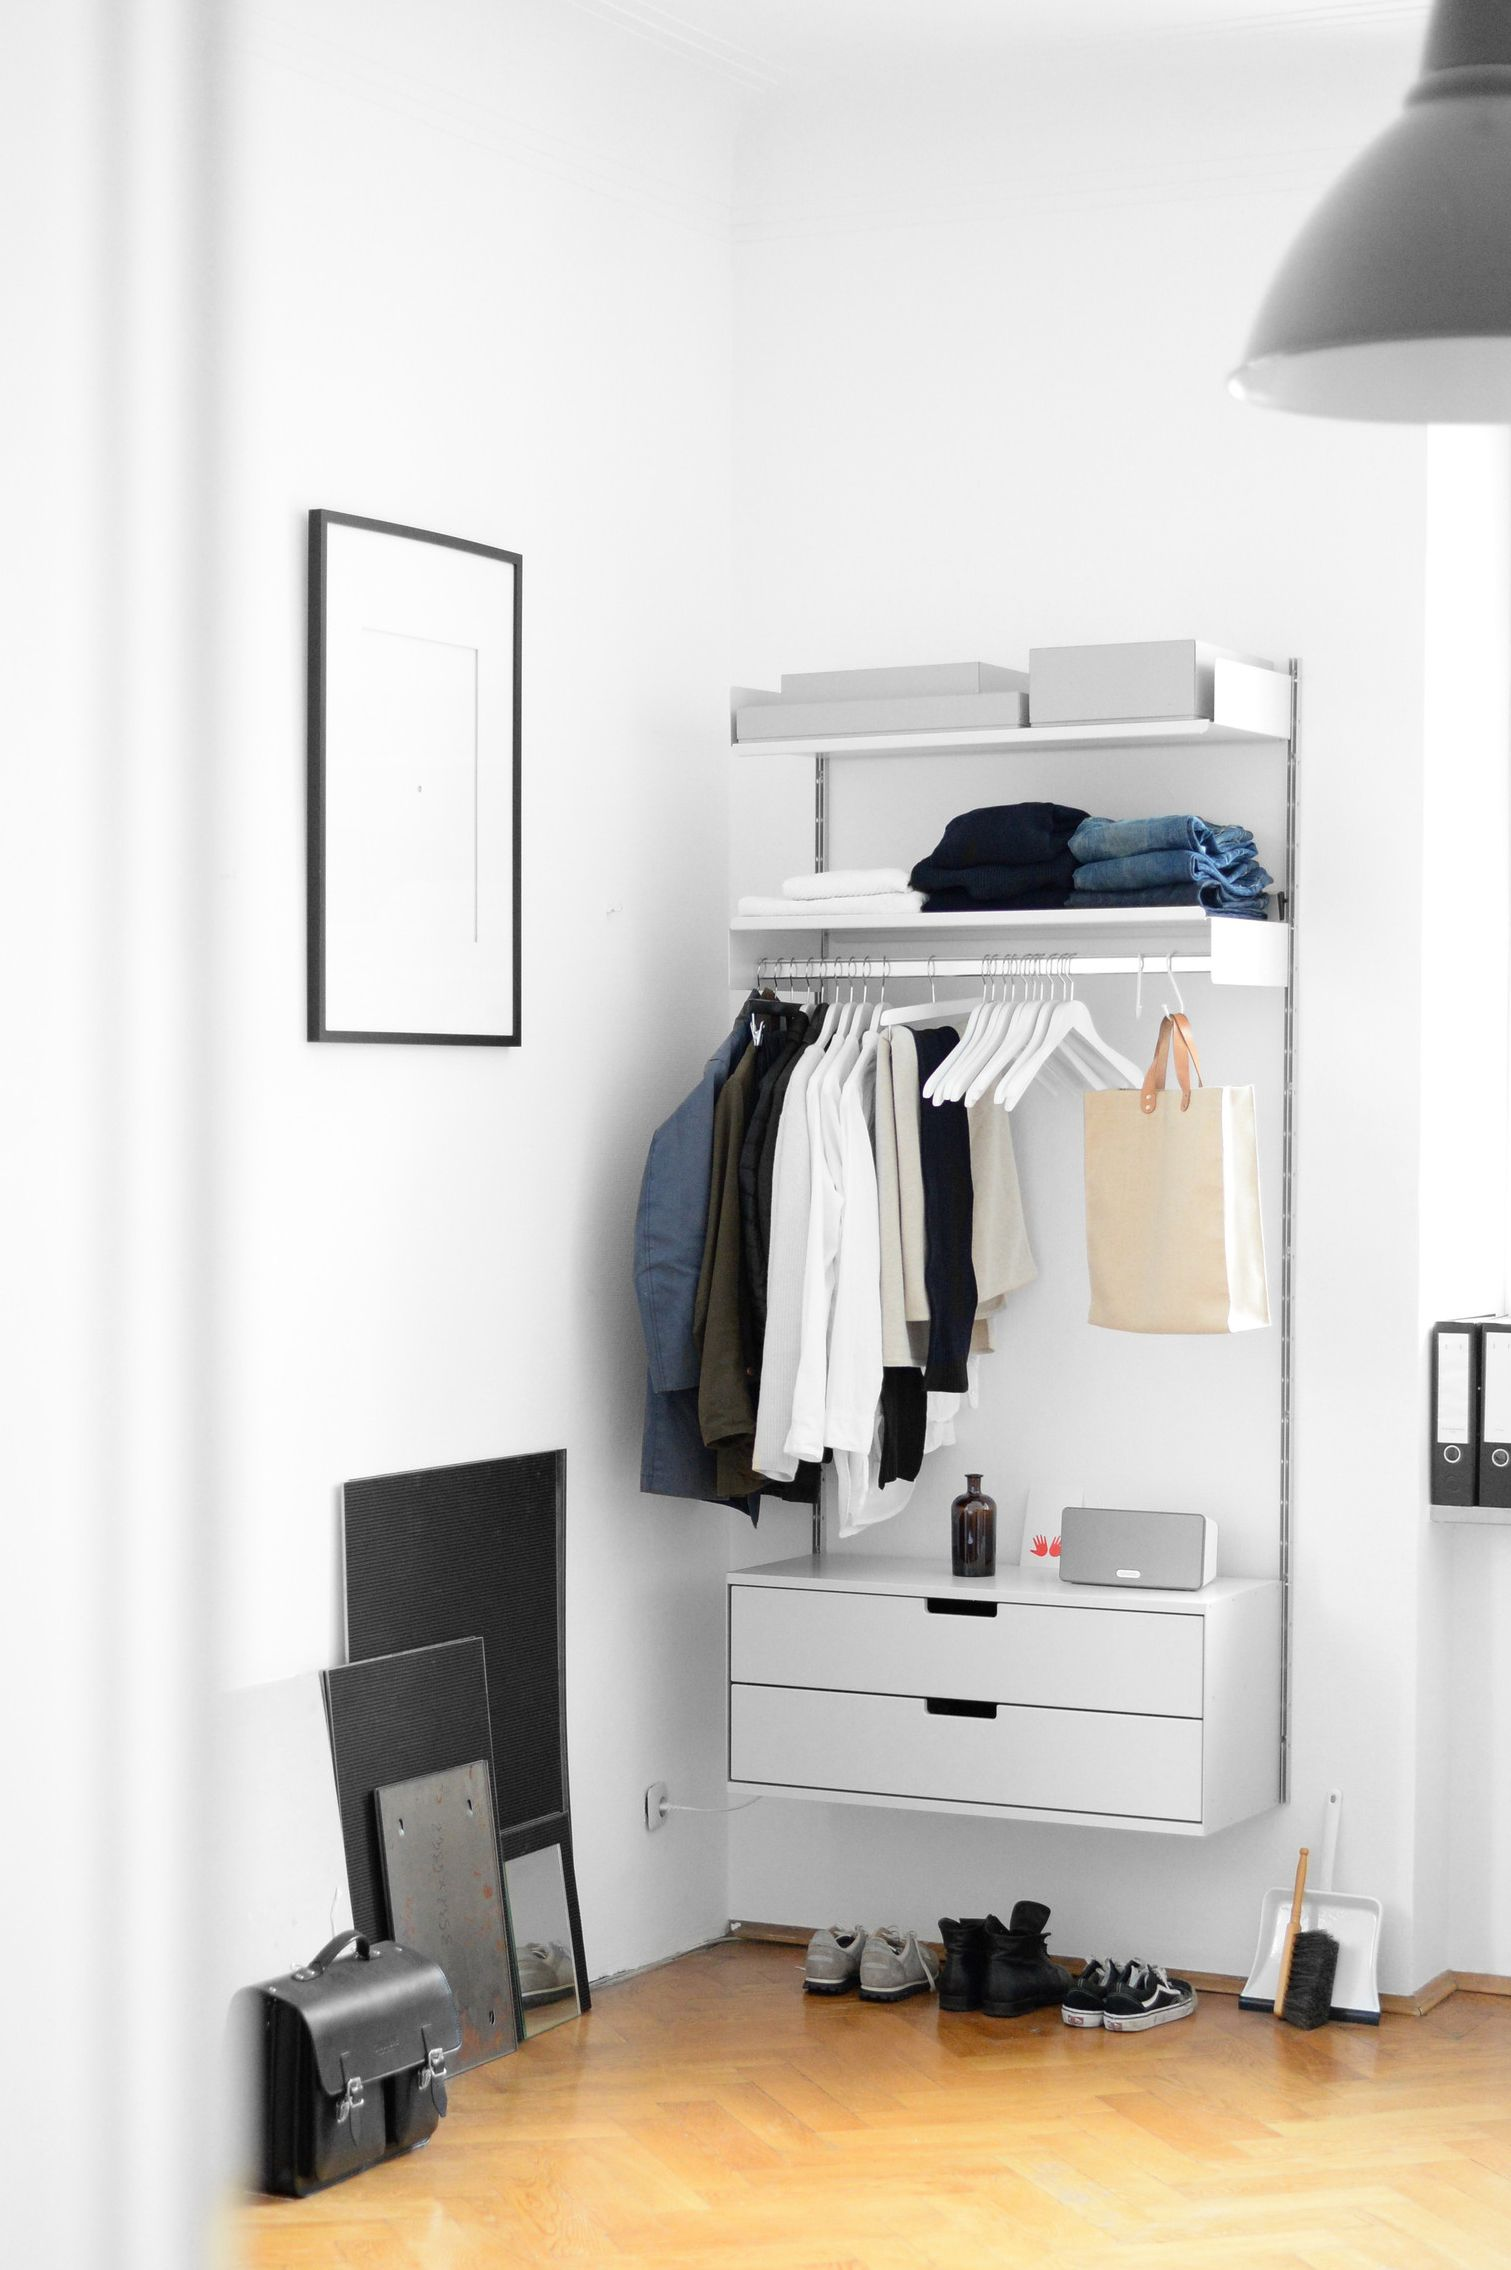 Simon S System Consists Of Two 200 Cm E Tracks With A 90 Wide Drawer Cabinet Hanging Shelf And Regular Metal